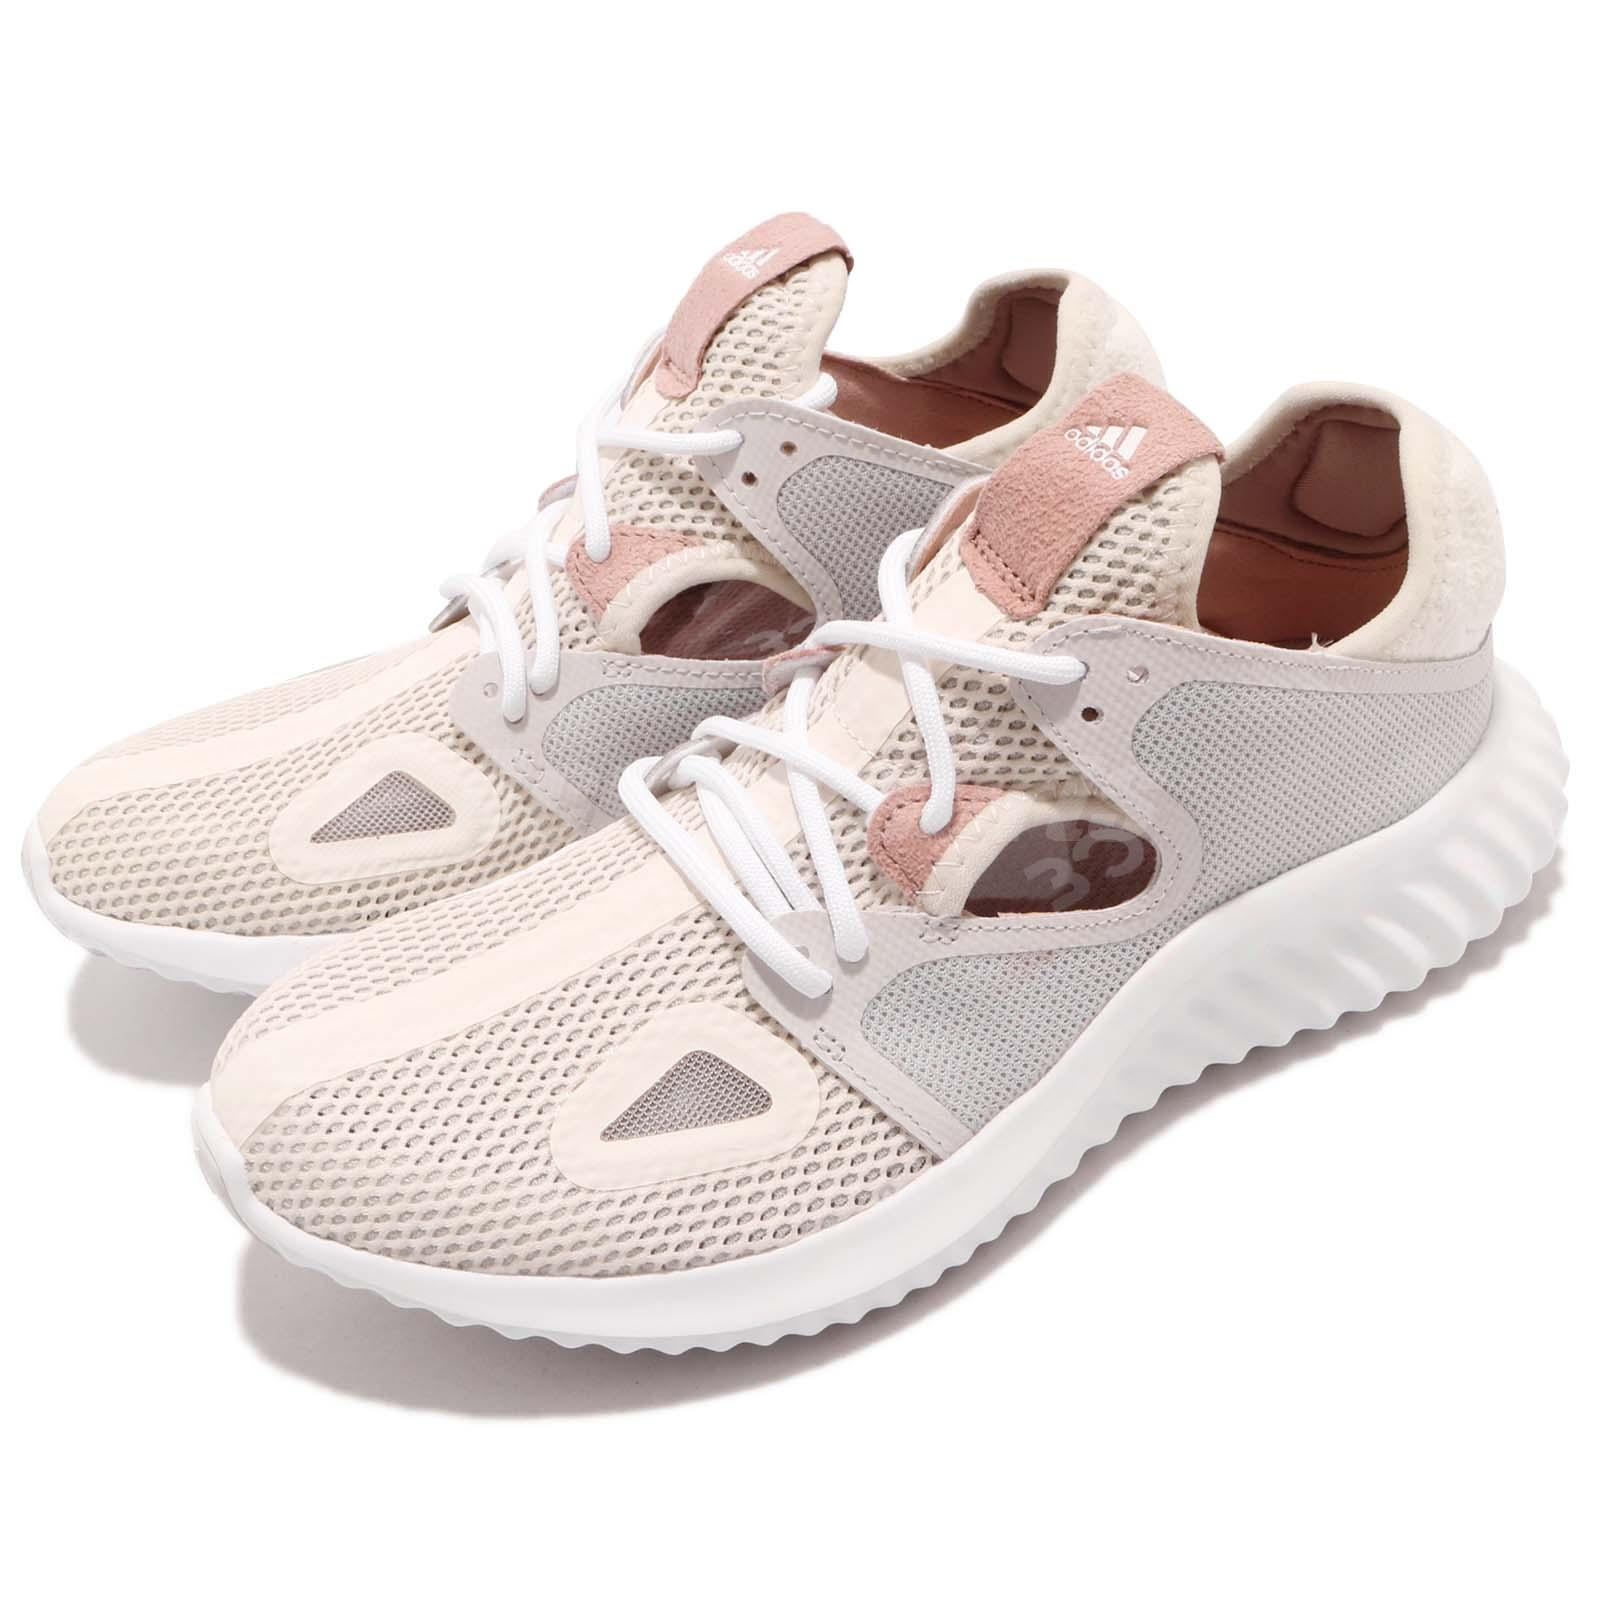 75bb9e368 Details about adidas Run Lux Clima W Off White Grey Ash Pearl Women Running  Shoes CQ0595